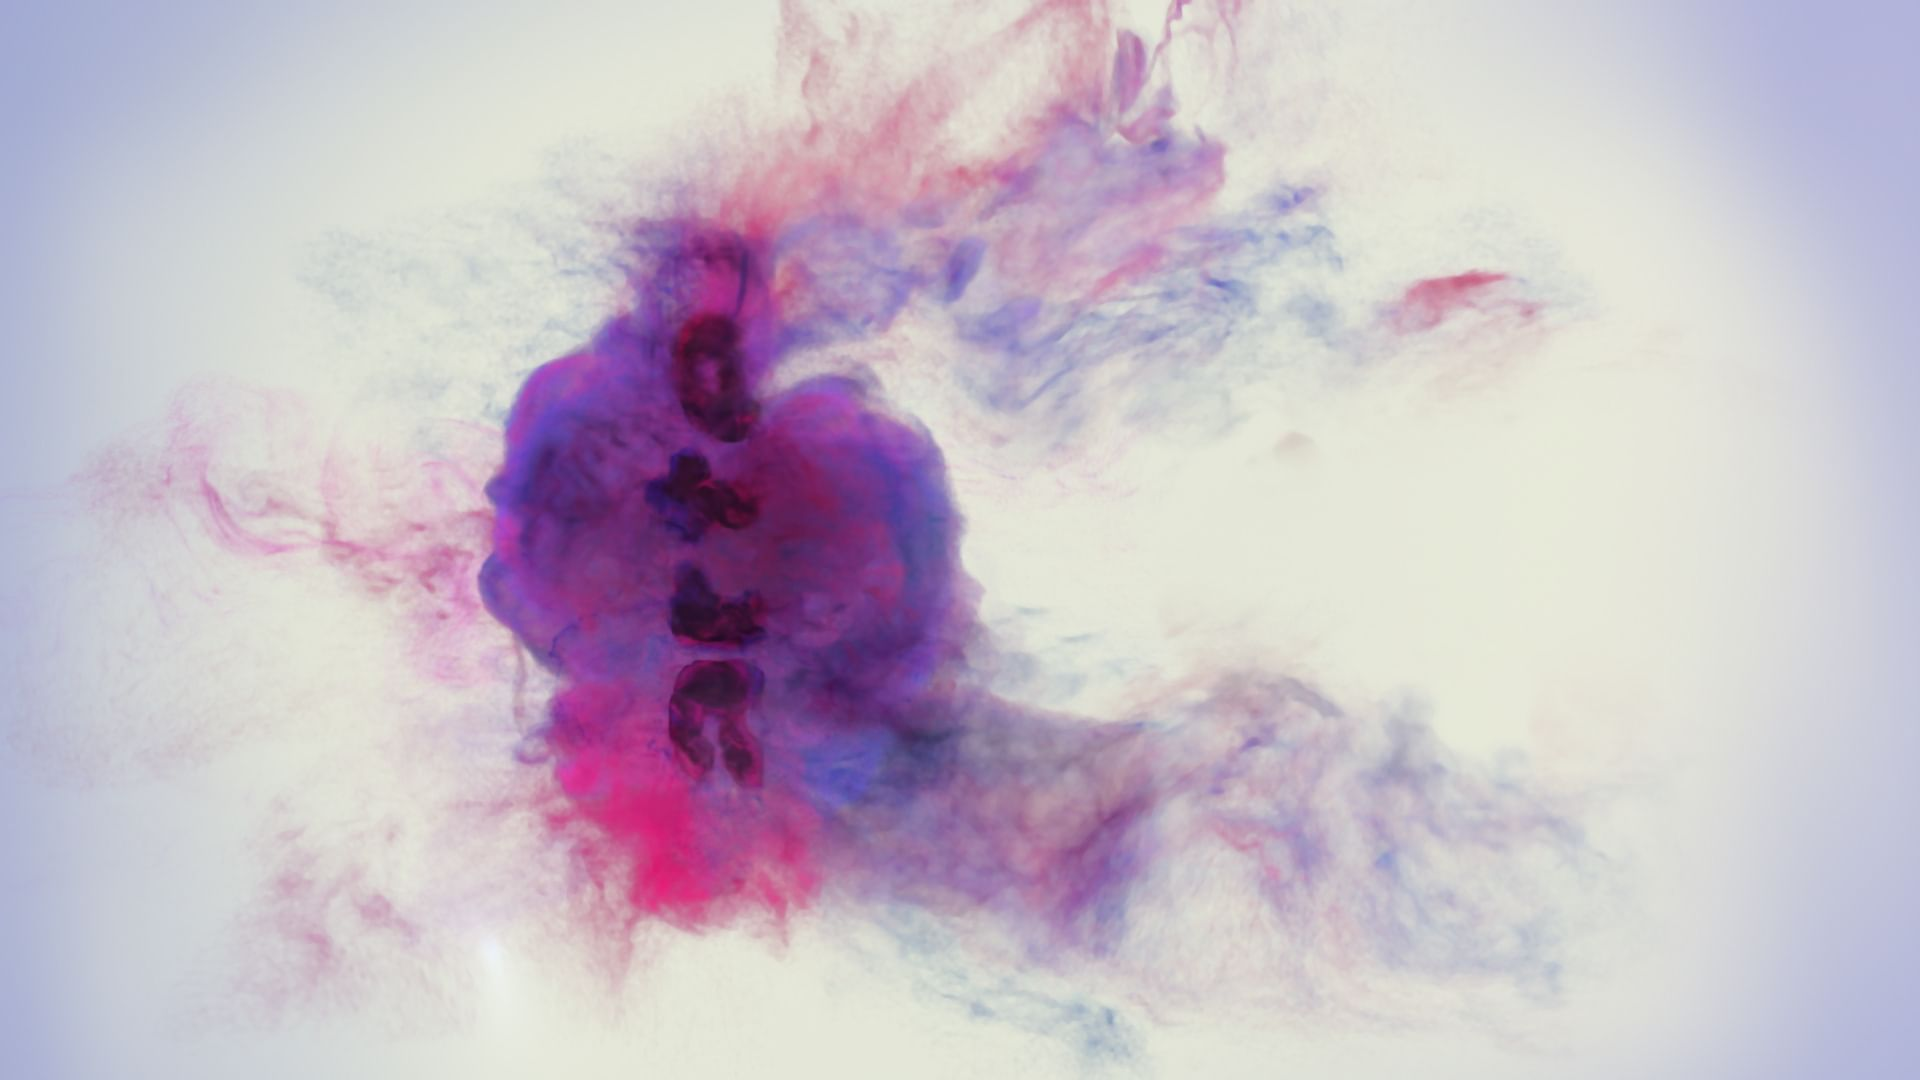 Myanmar: The Dying Lake